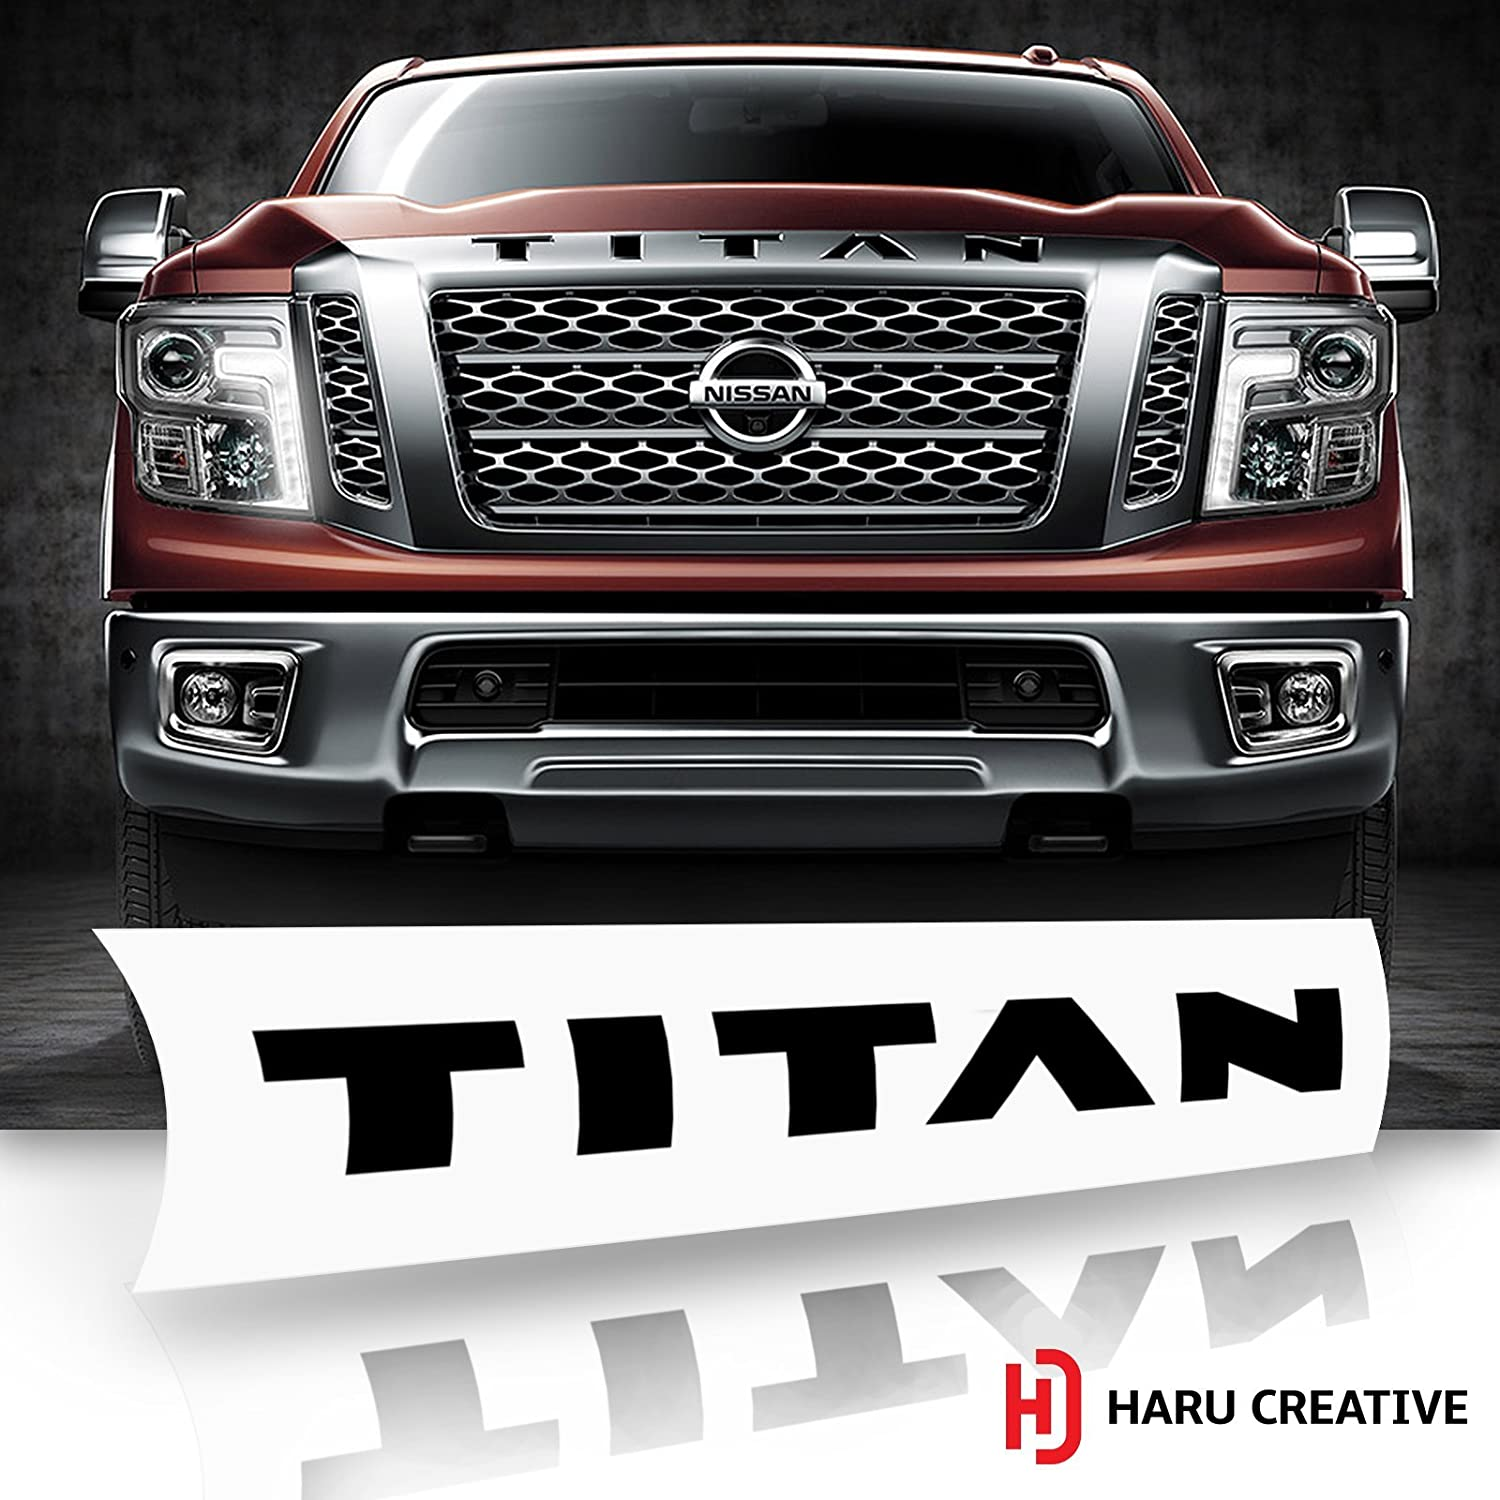 Front Hood Grille Emblem Letter Insert Overlay Vinyl Decal Stickers Compatible with and Fits Nissan Titan XD 2016 2017 2018 Haru Creative Chrome Silver Loyo